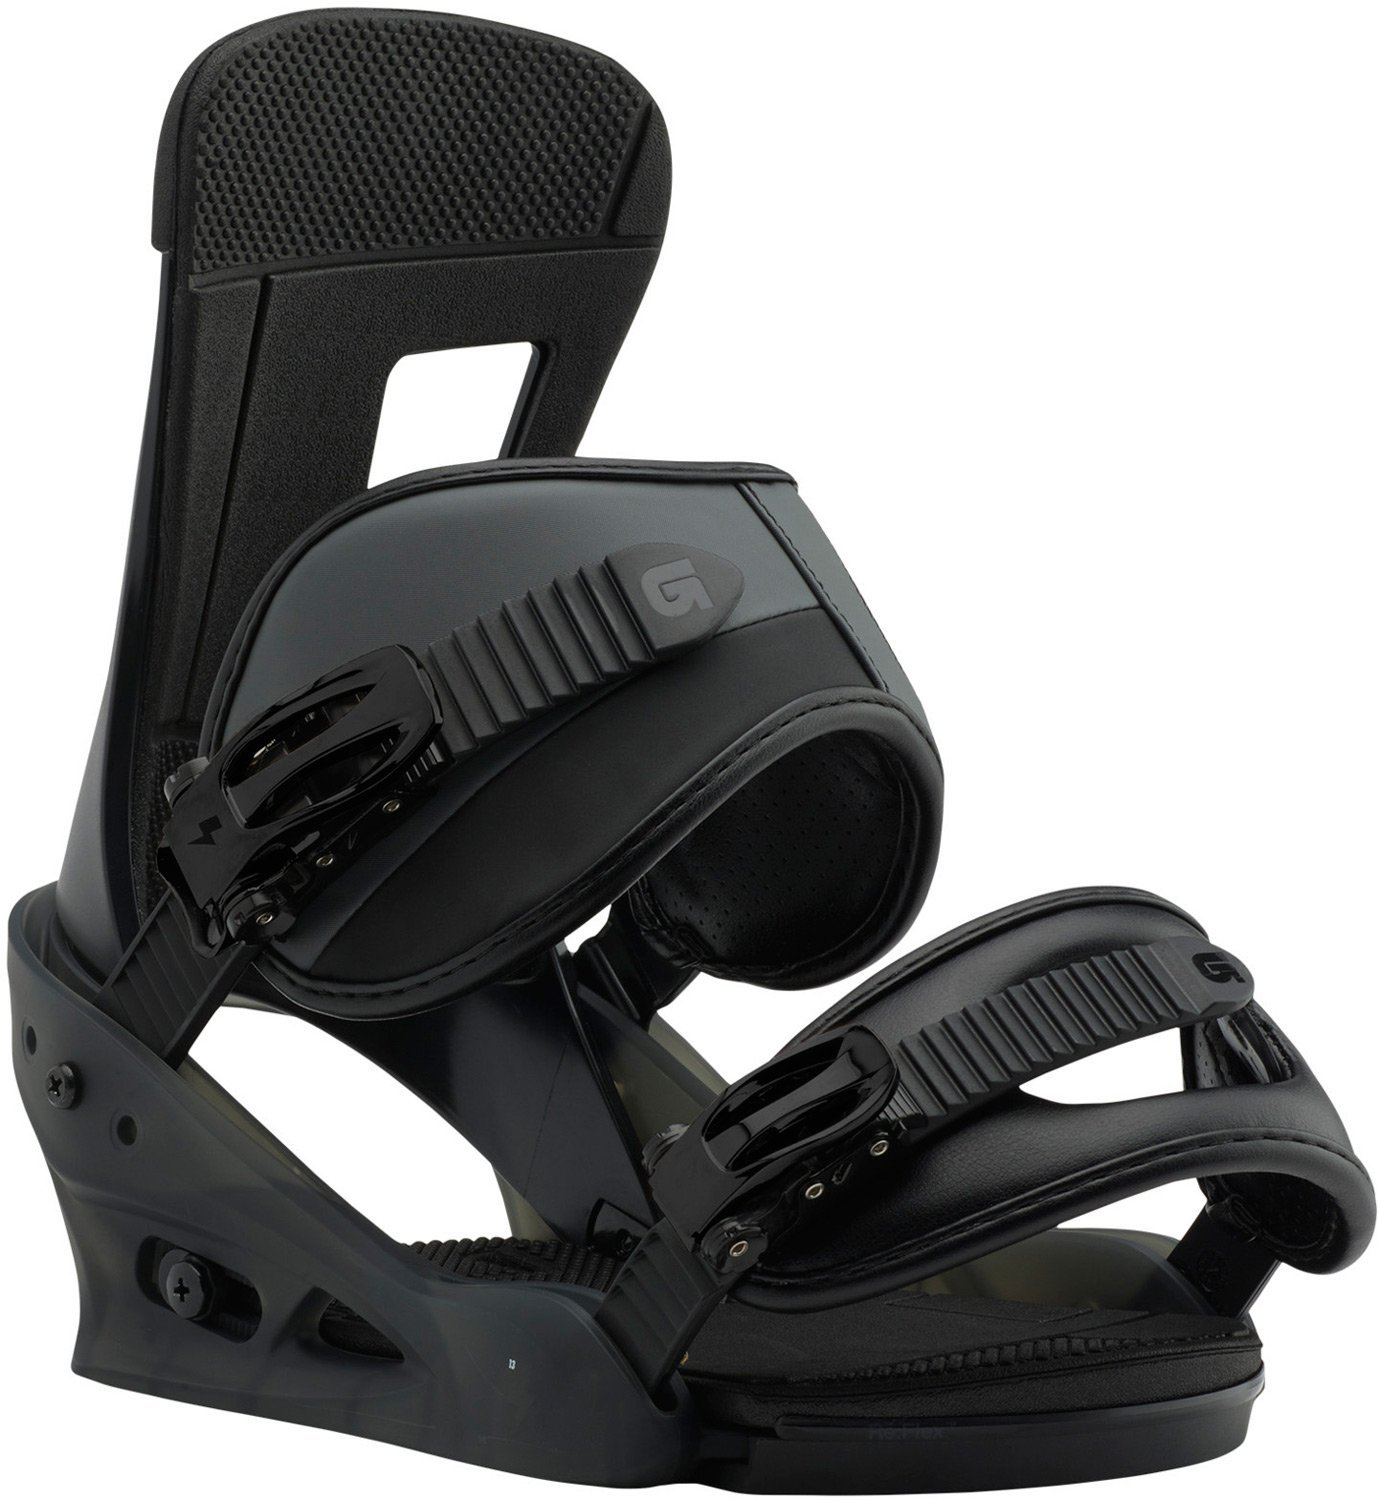 Burton Freestyle Snowboard Bindings Black Matte Sz S (6-8) by Burton